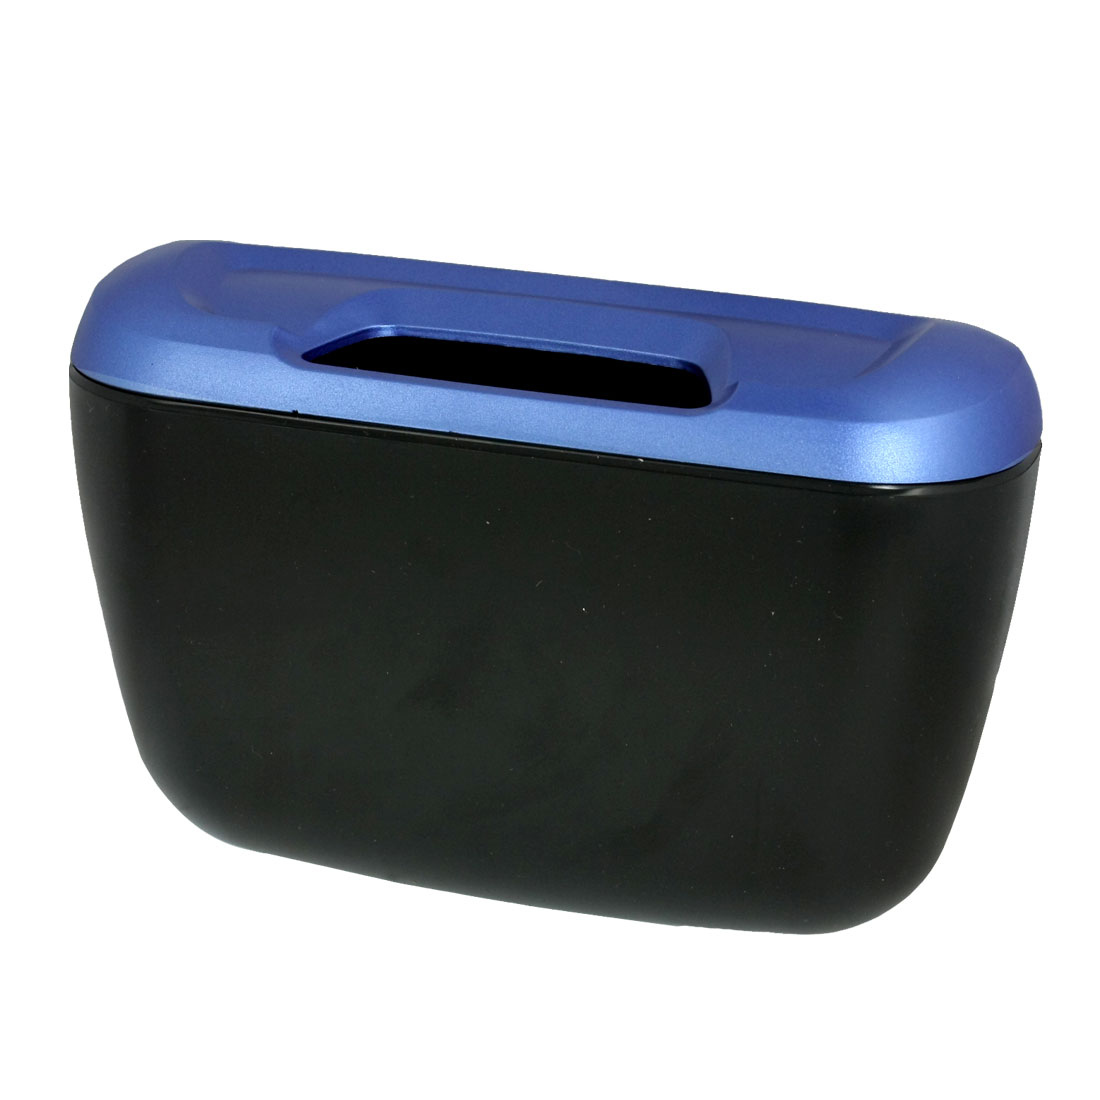 Car Interior Adhesive Blue Black Trash Bin Dustbin Junk Container